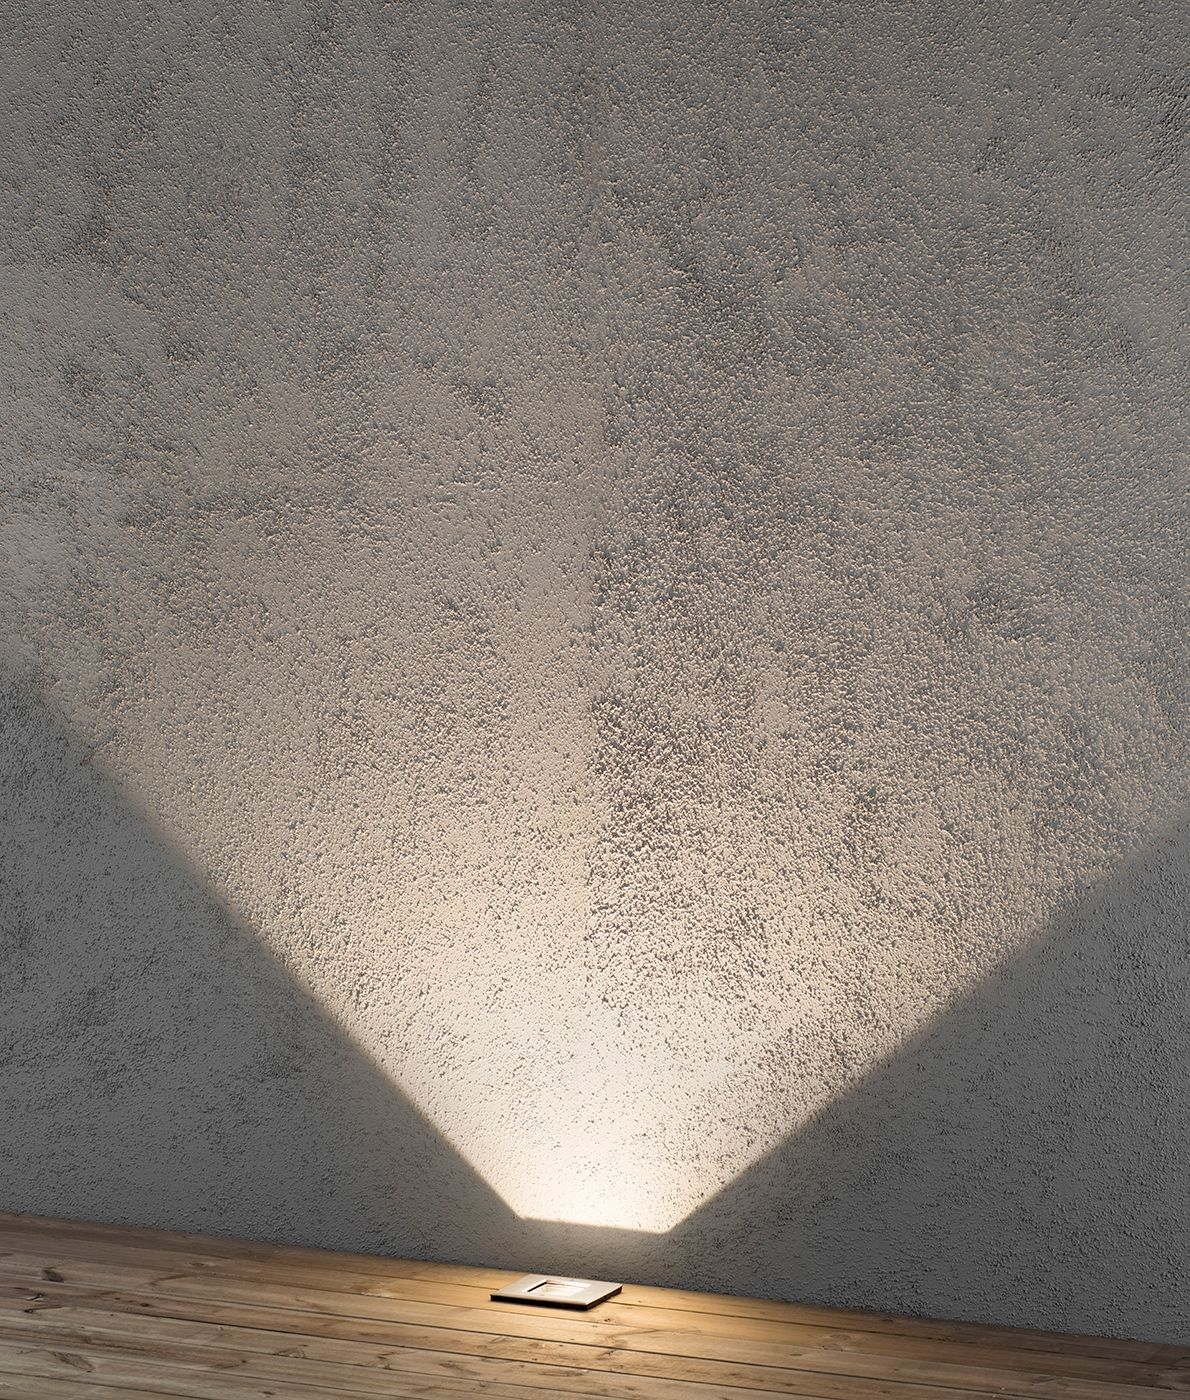 Ground Light With Adjustable Beam Angle In 2020 Exterior Wall Design Wall Wash Lighting Facade Lighting